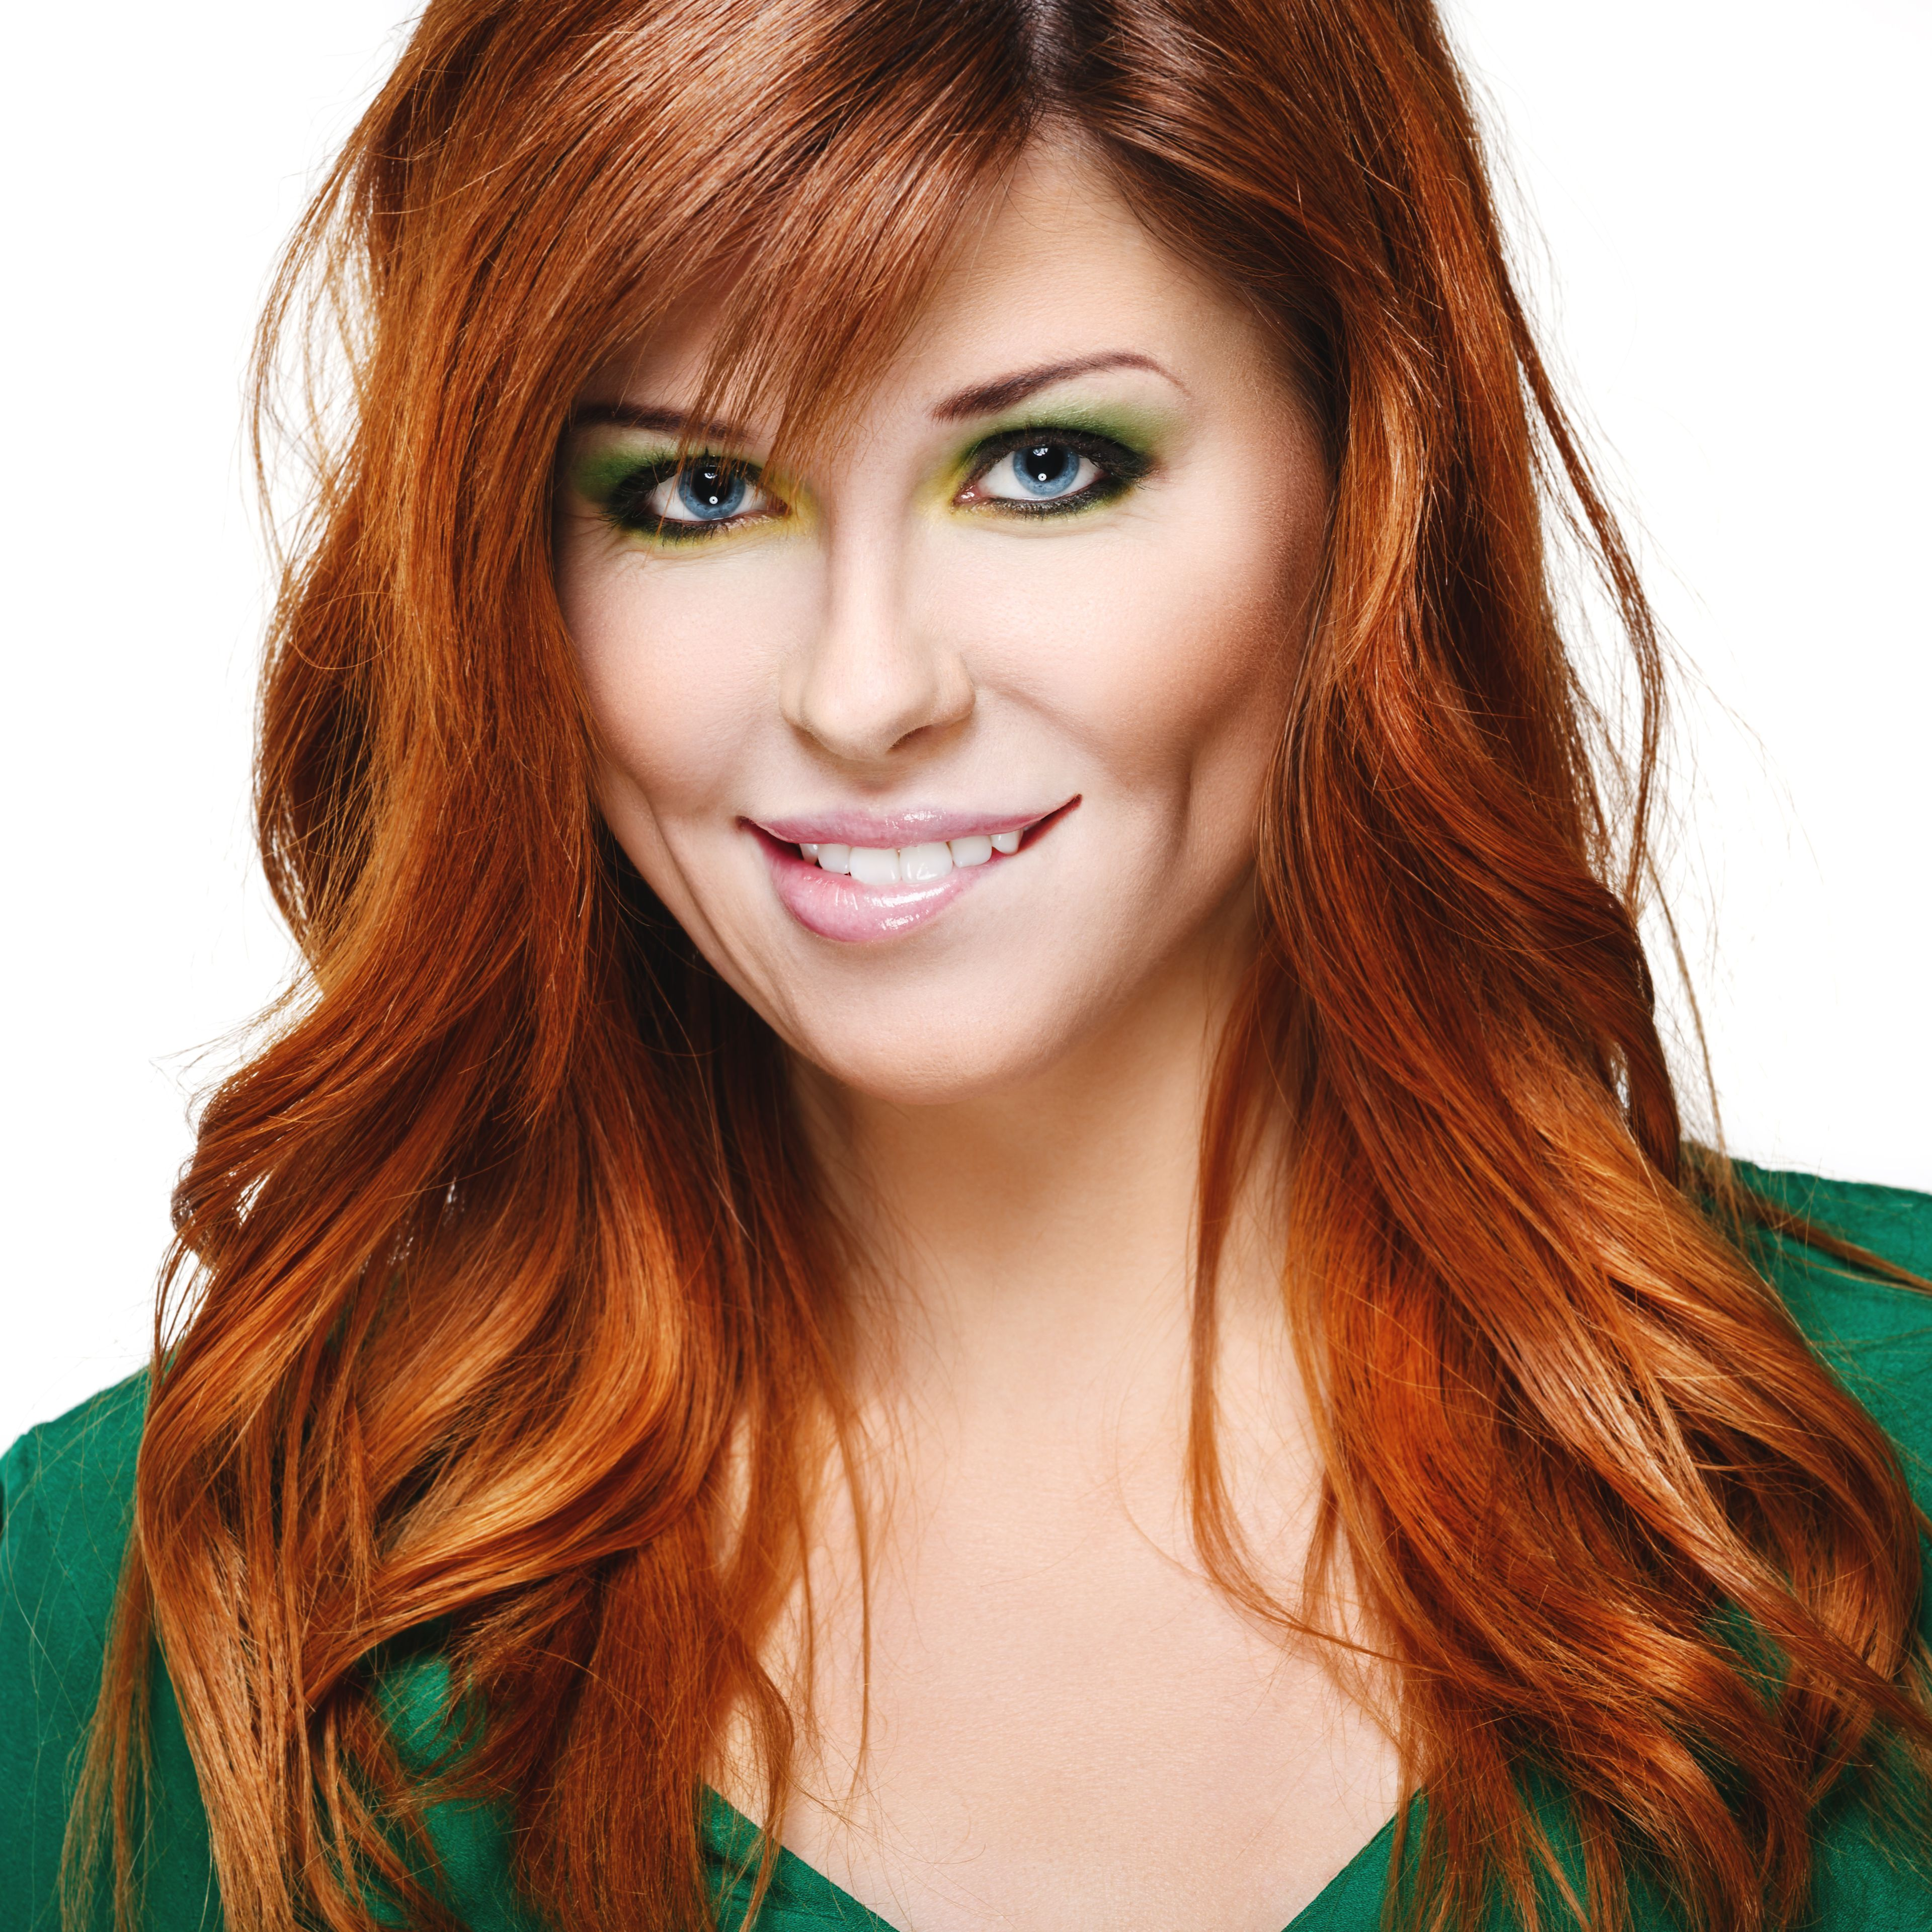 Hair Color Trends Fall 2014 Red Is The Hot New Hair Color For 2014